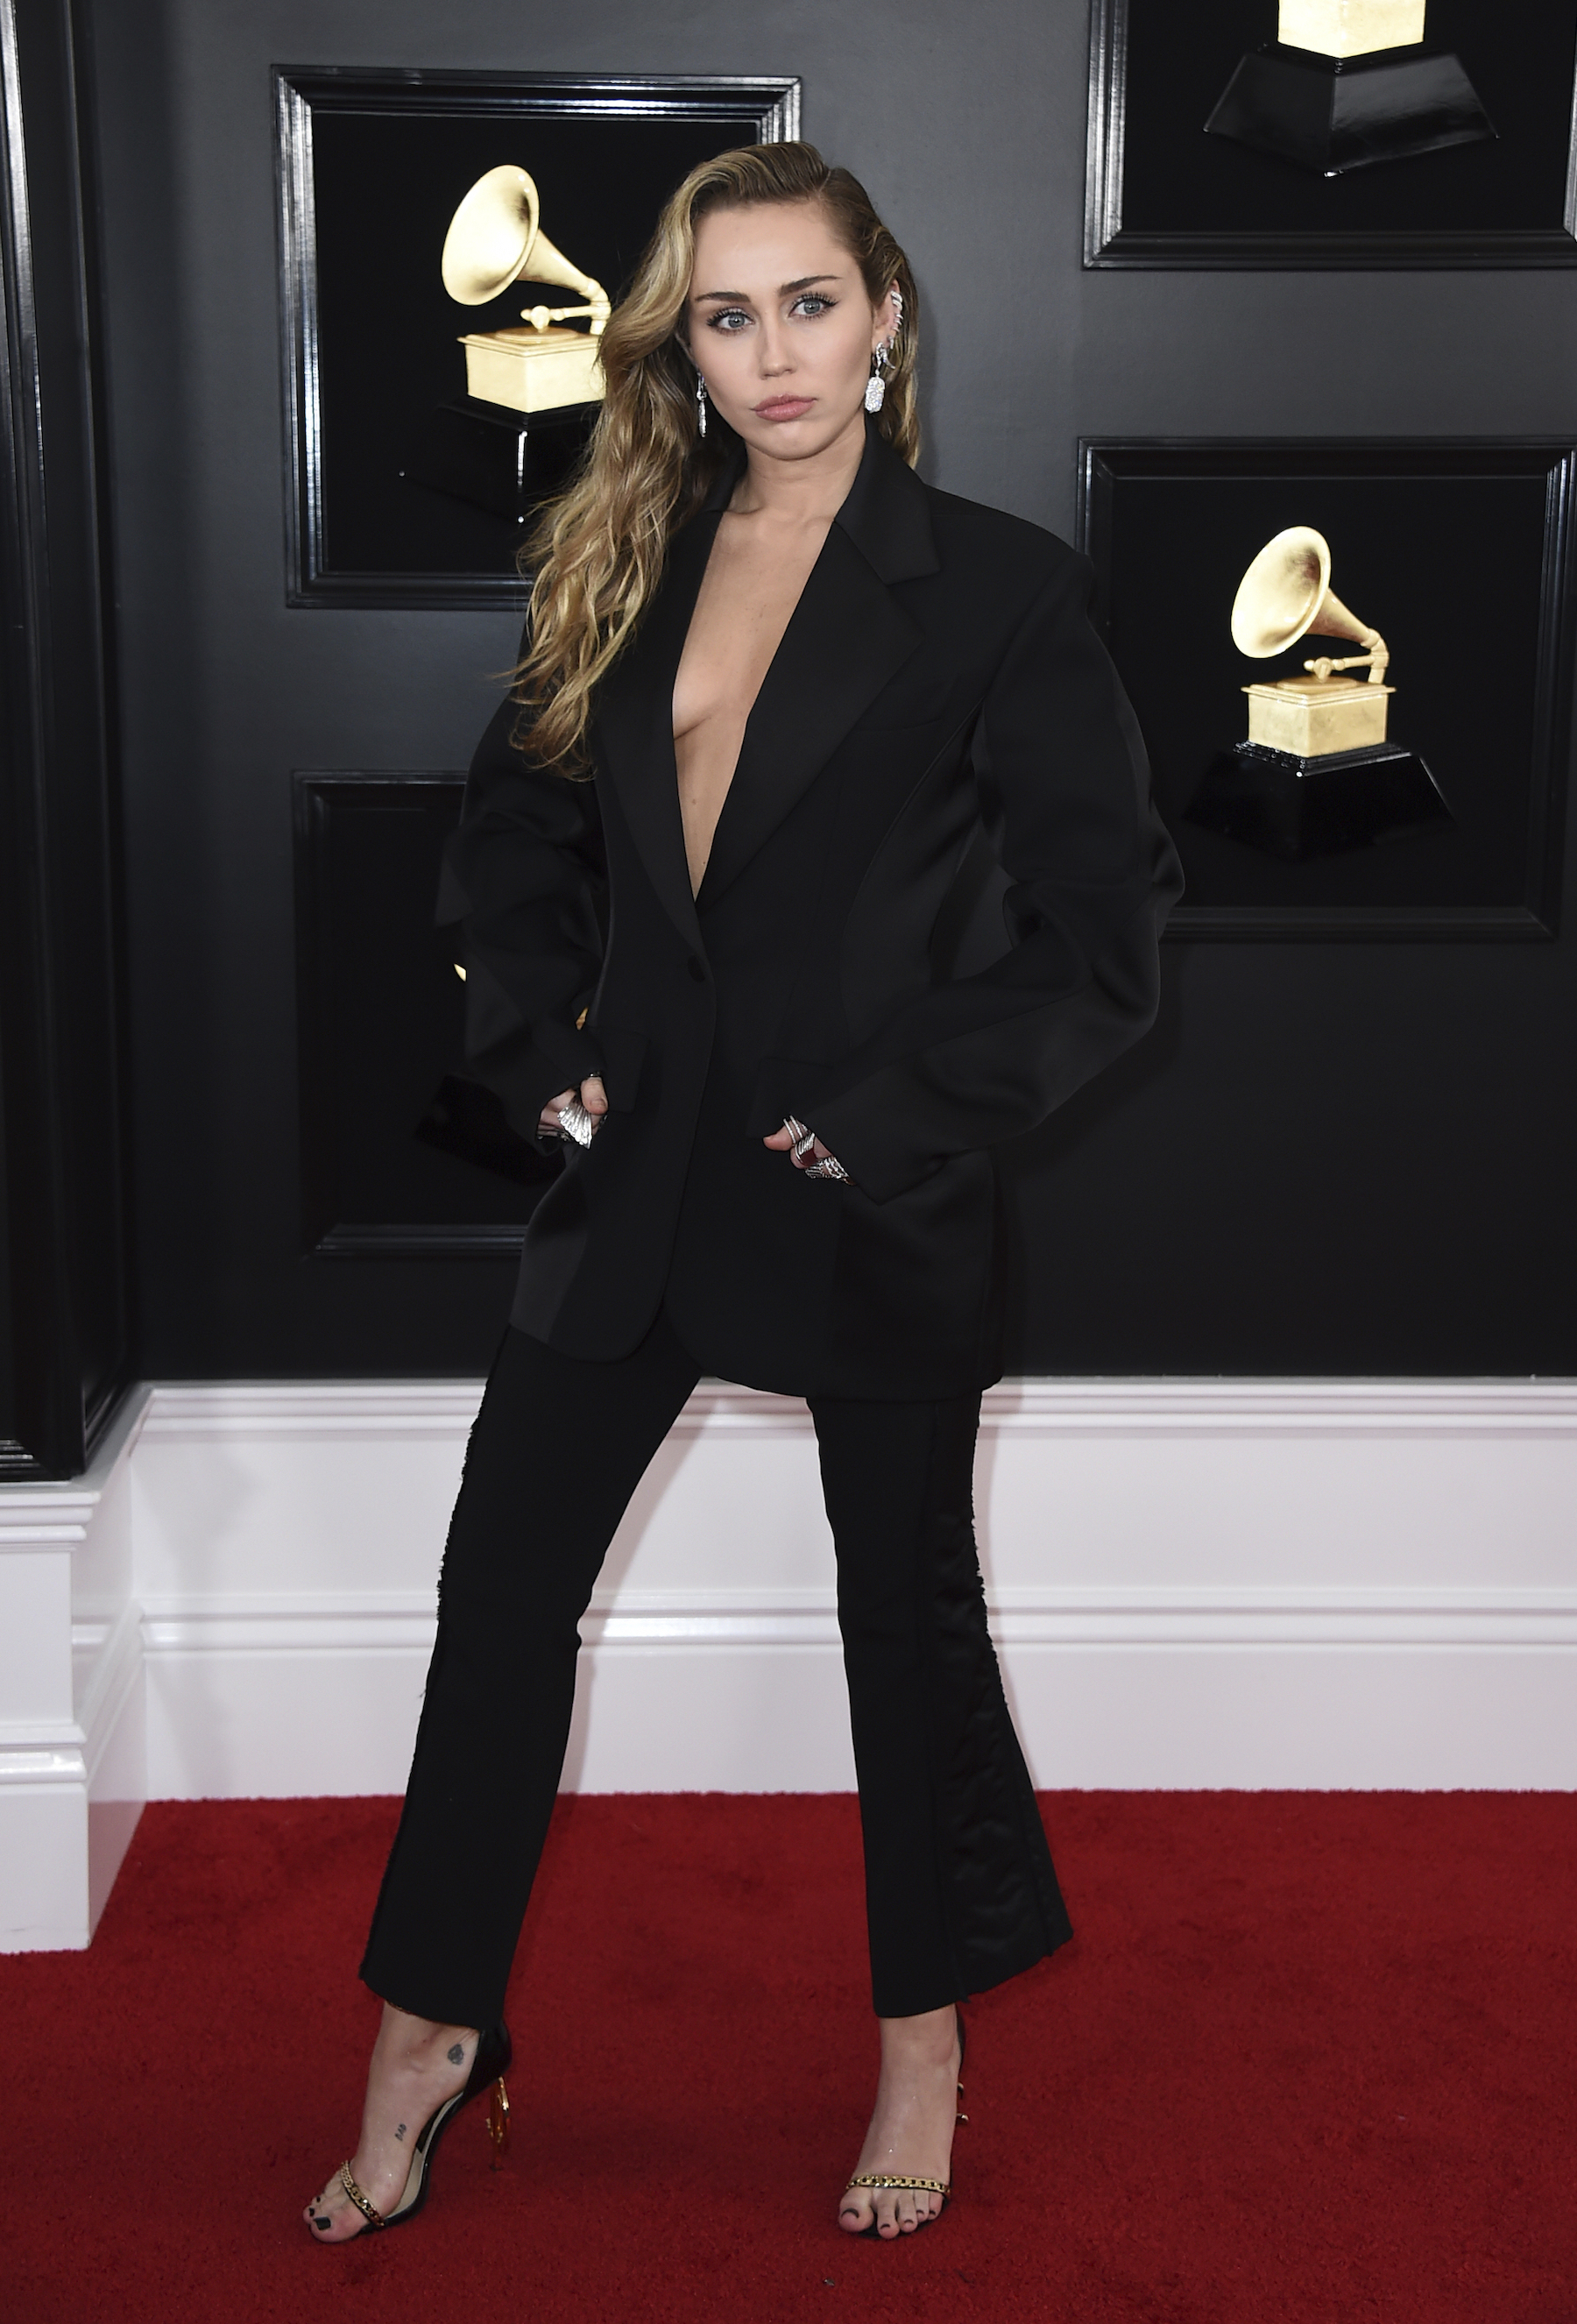 "<div class=""meta image-caption""><div class=""origin-logo origin-image ap""><span>AP</span></div><span class=""caption-text"">Miley Cyrus arrives at the 61st annual Grammy Awards at the Staples Center on Sunday, Feb. 10, 2019, in Los Angeles. (Jordan Strauss/Invision/AP)</span></div>"